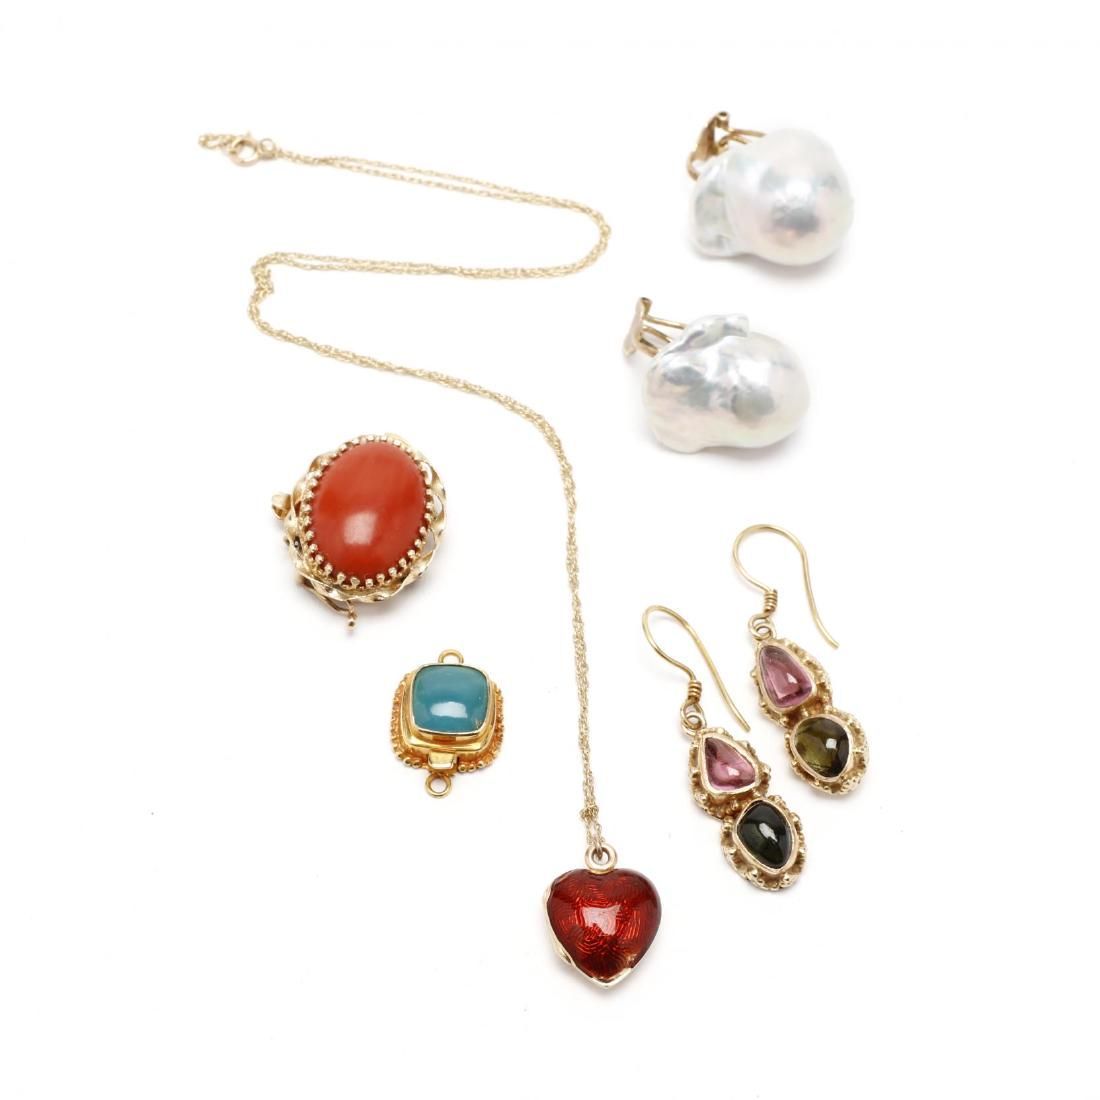 Group of Gold & Gemstone Jewelry Items